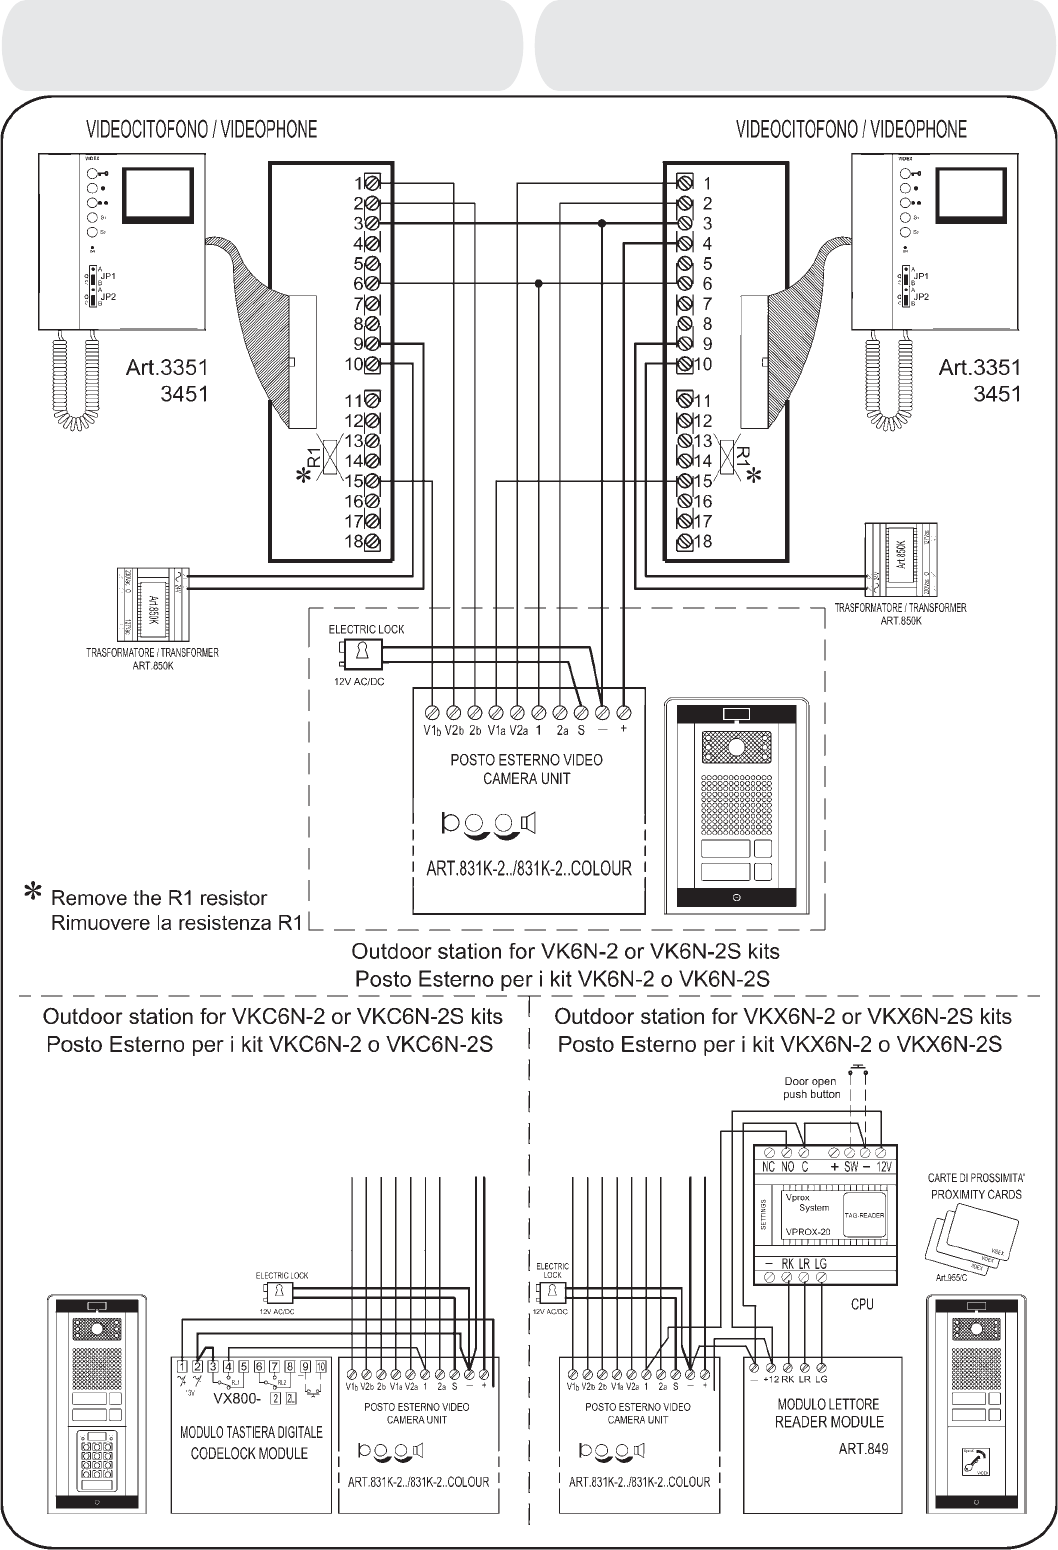 Videx Copier VK6N manual (page 10 of 12)